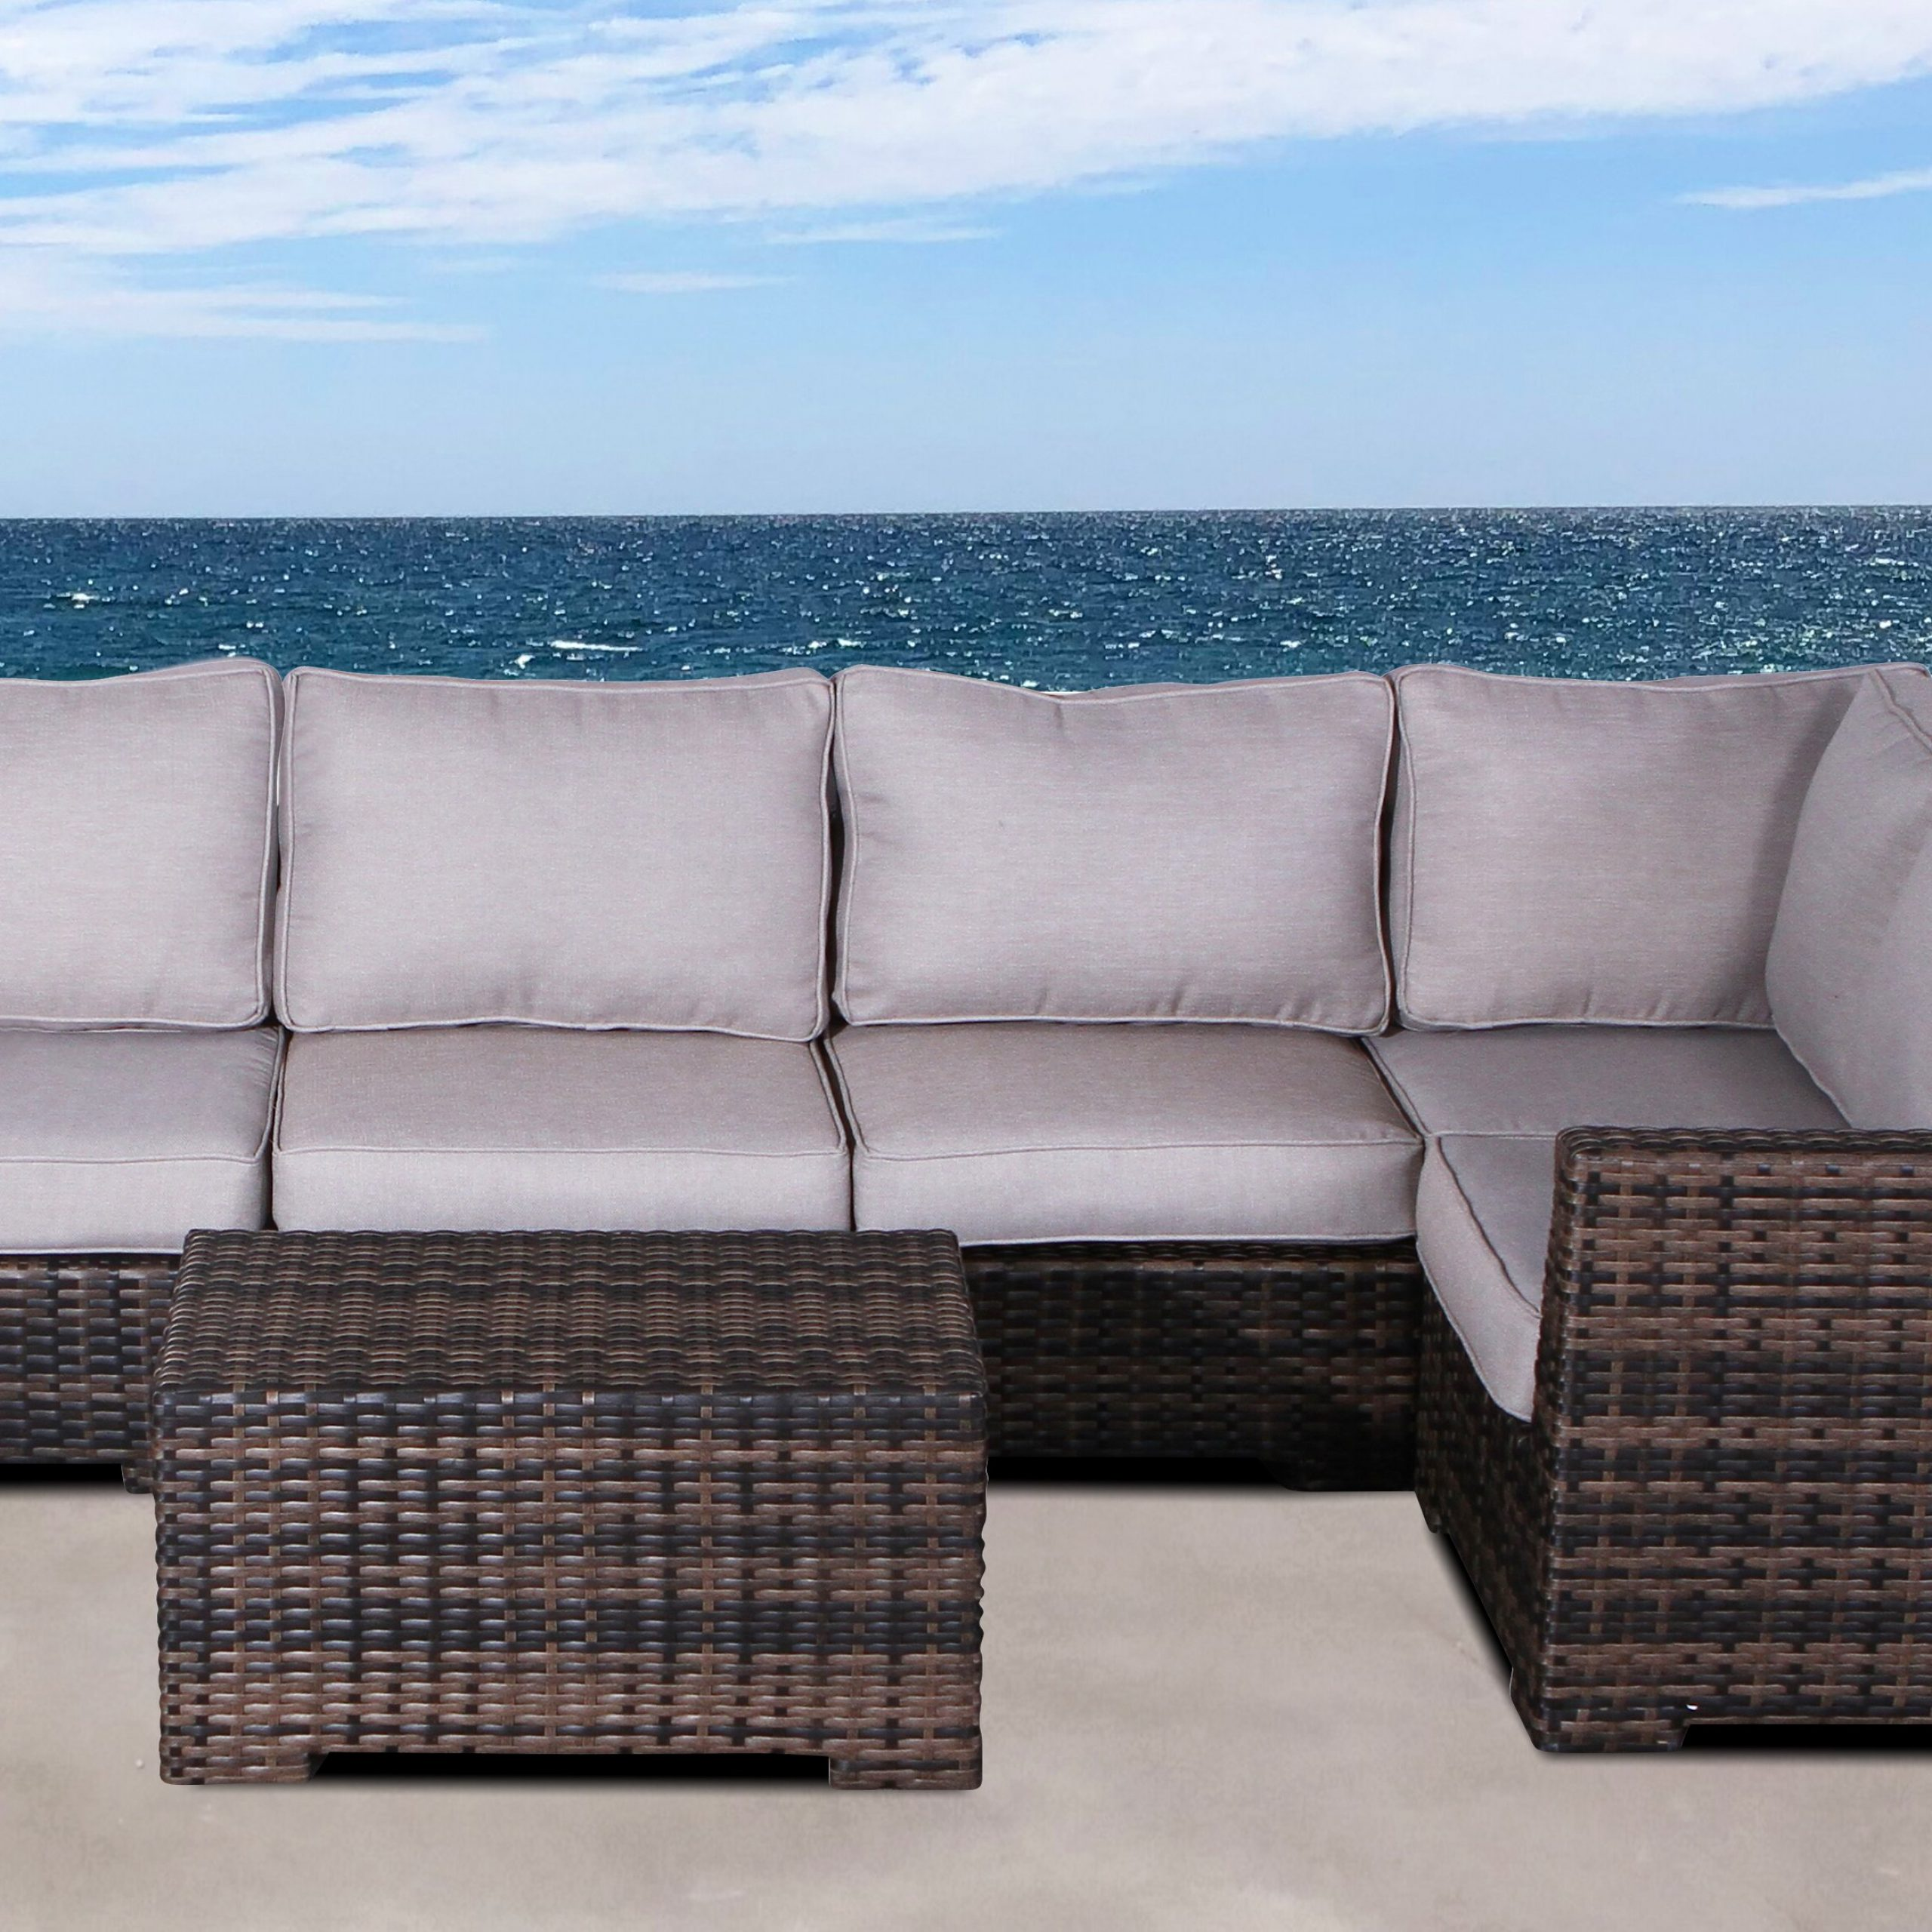 Letona Resort 2 Piece Sectional Set With Cushions With Most Popular Letona Patio Sectionals With Cushions (View 9 of 25)